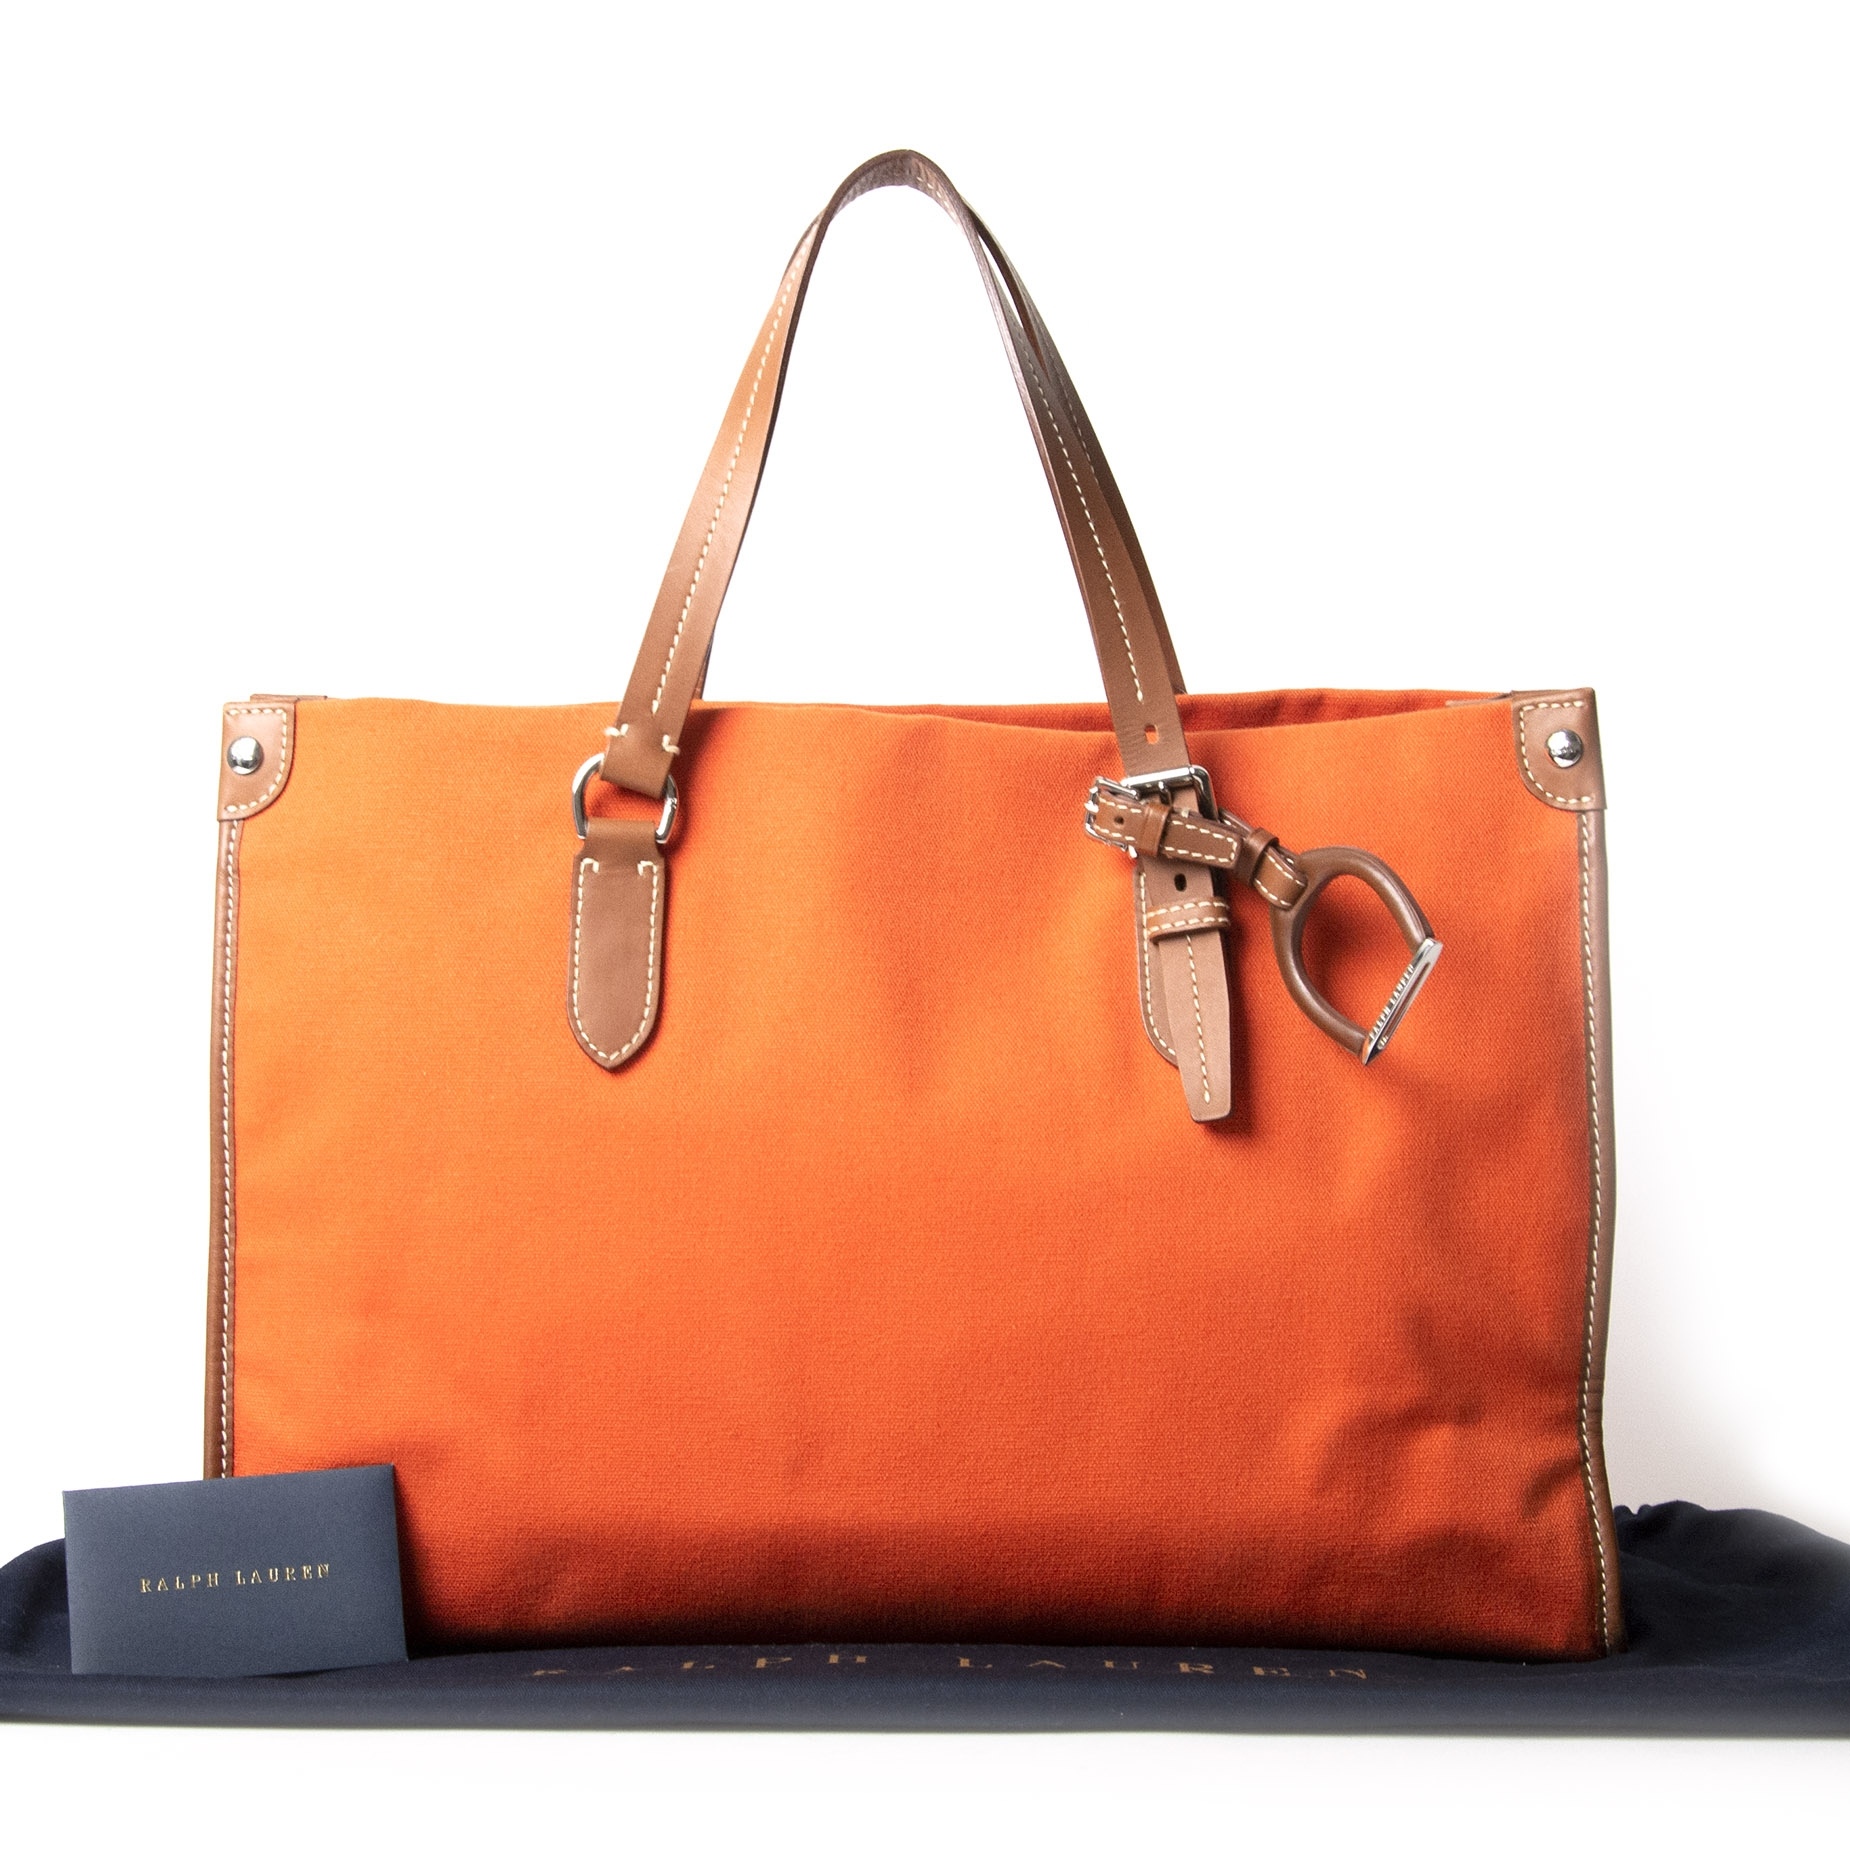 Ralph Lauren Orange Canvas Tote Bag